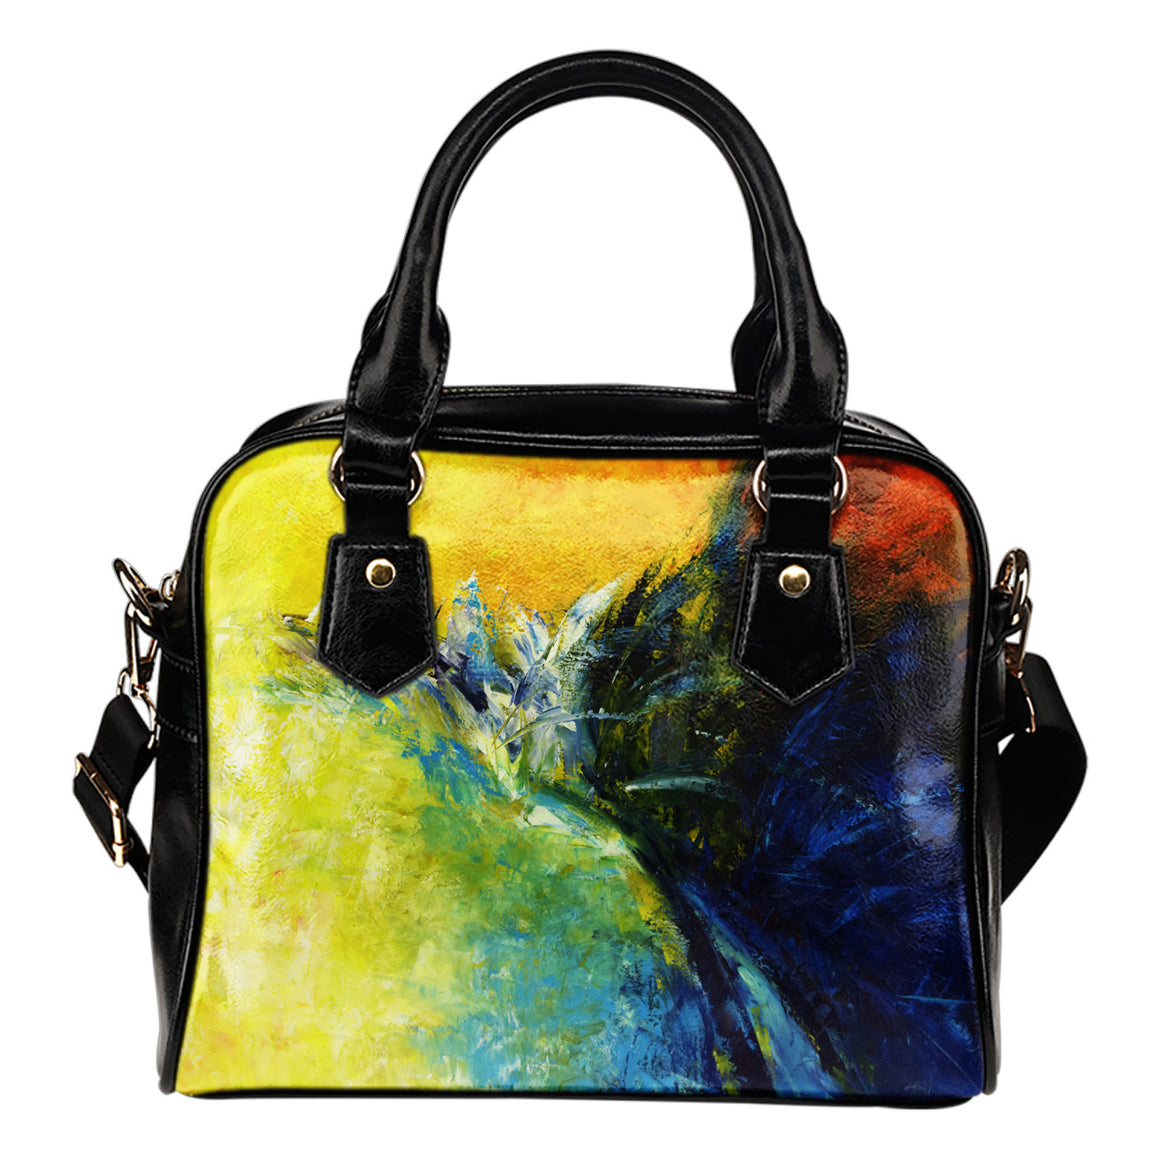 Yellow Art Shoulder Bag